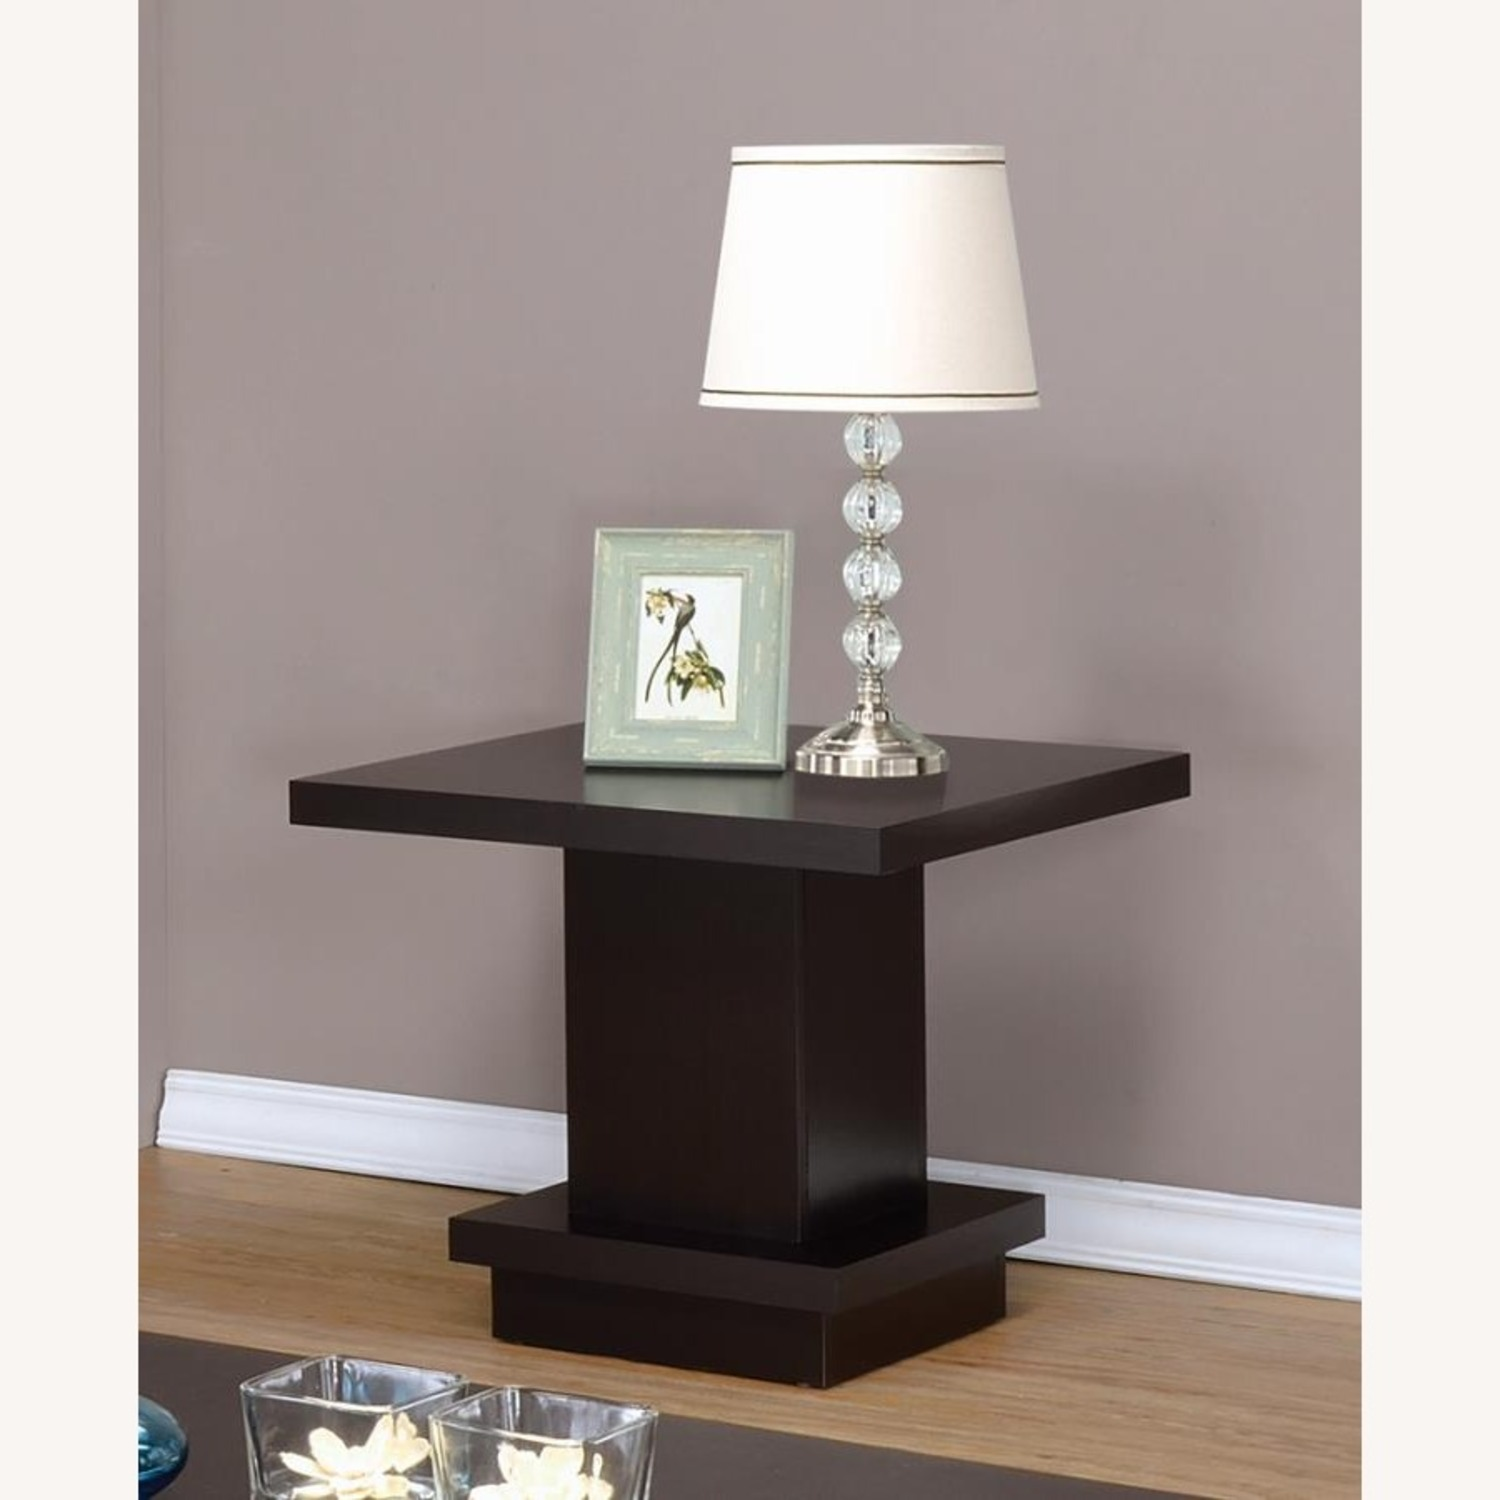 End Table In Warm Cappuccino Finish - image-2